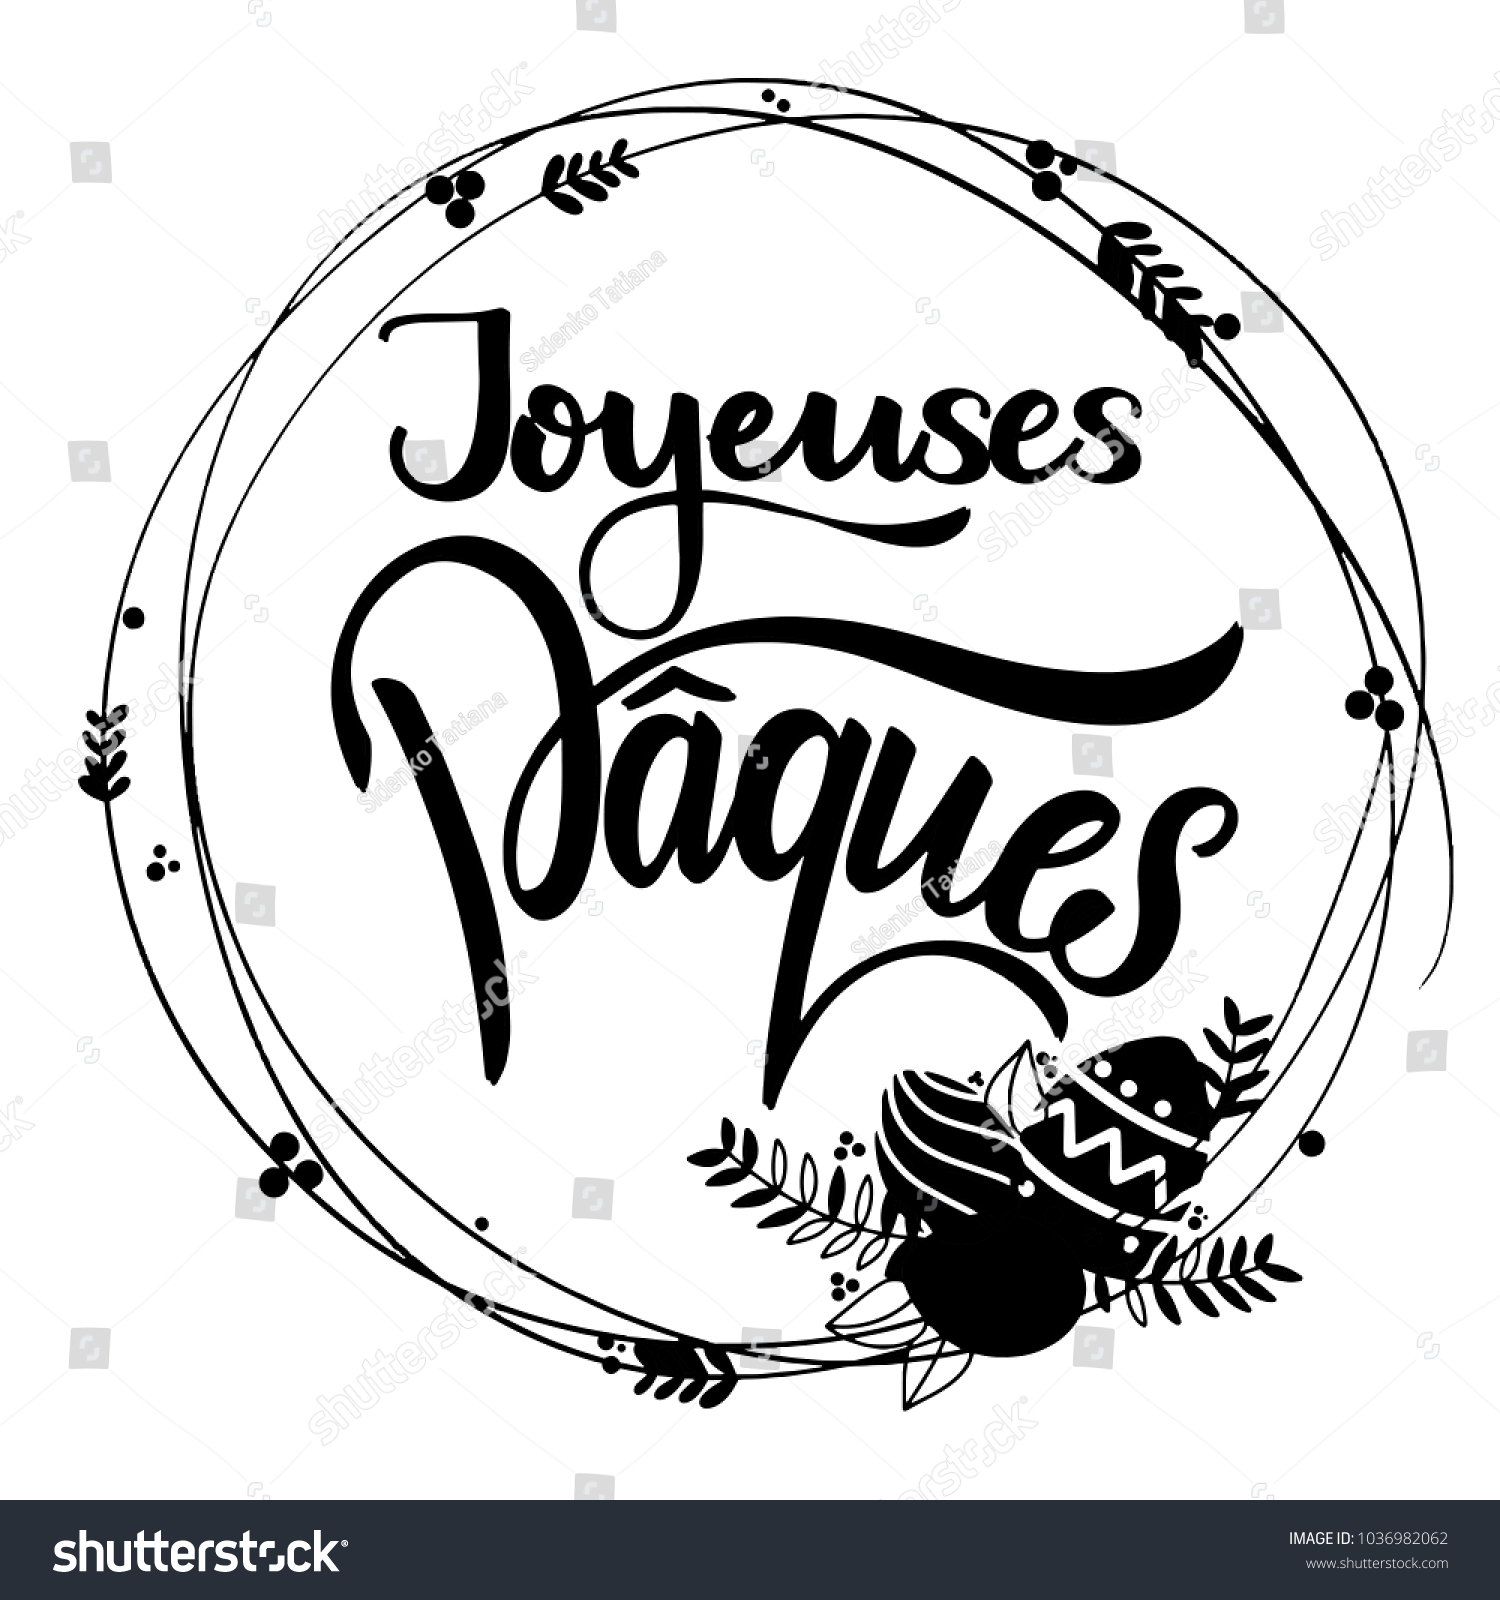 Joyeuses paques lettering happy easter lettering stock vector happy easter lettering in french hand written easter phrases seasons m4hsunfo